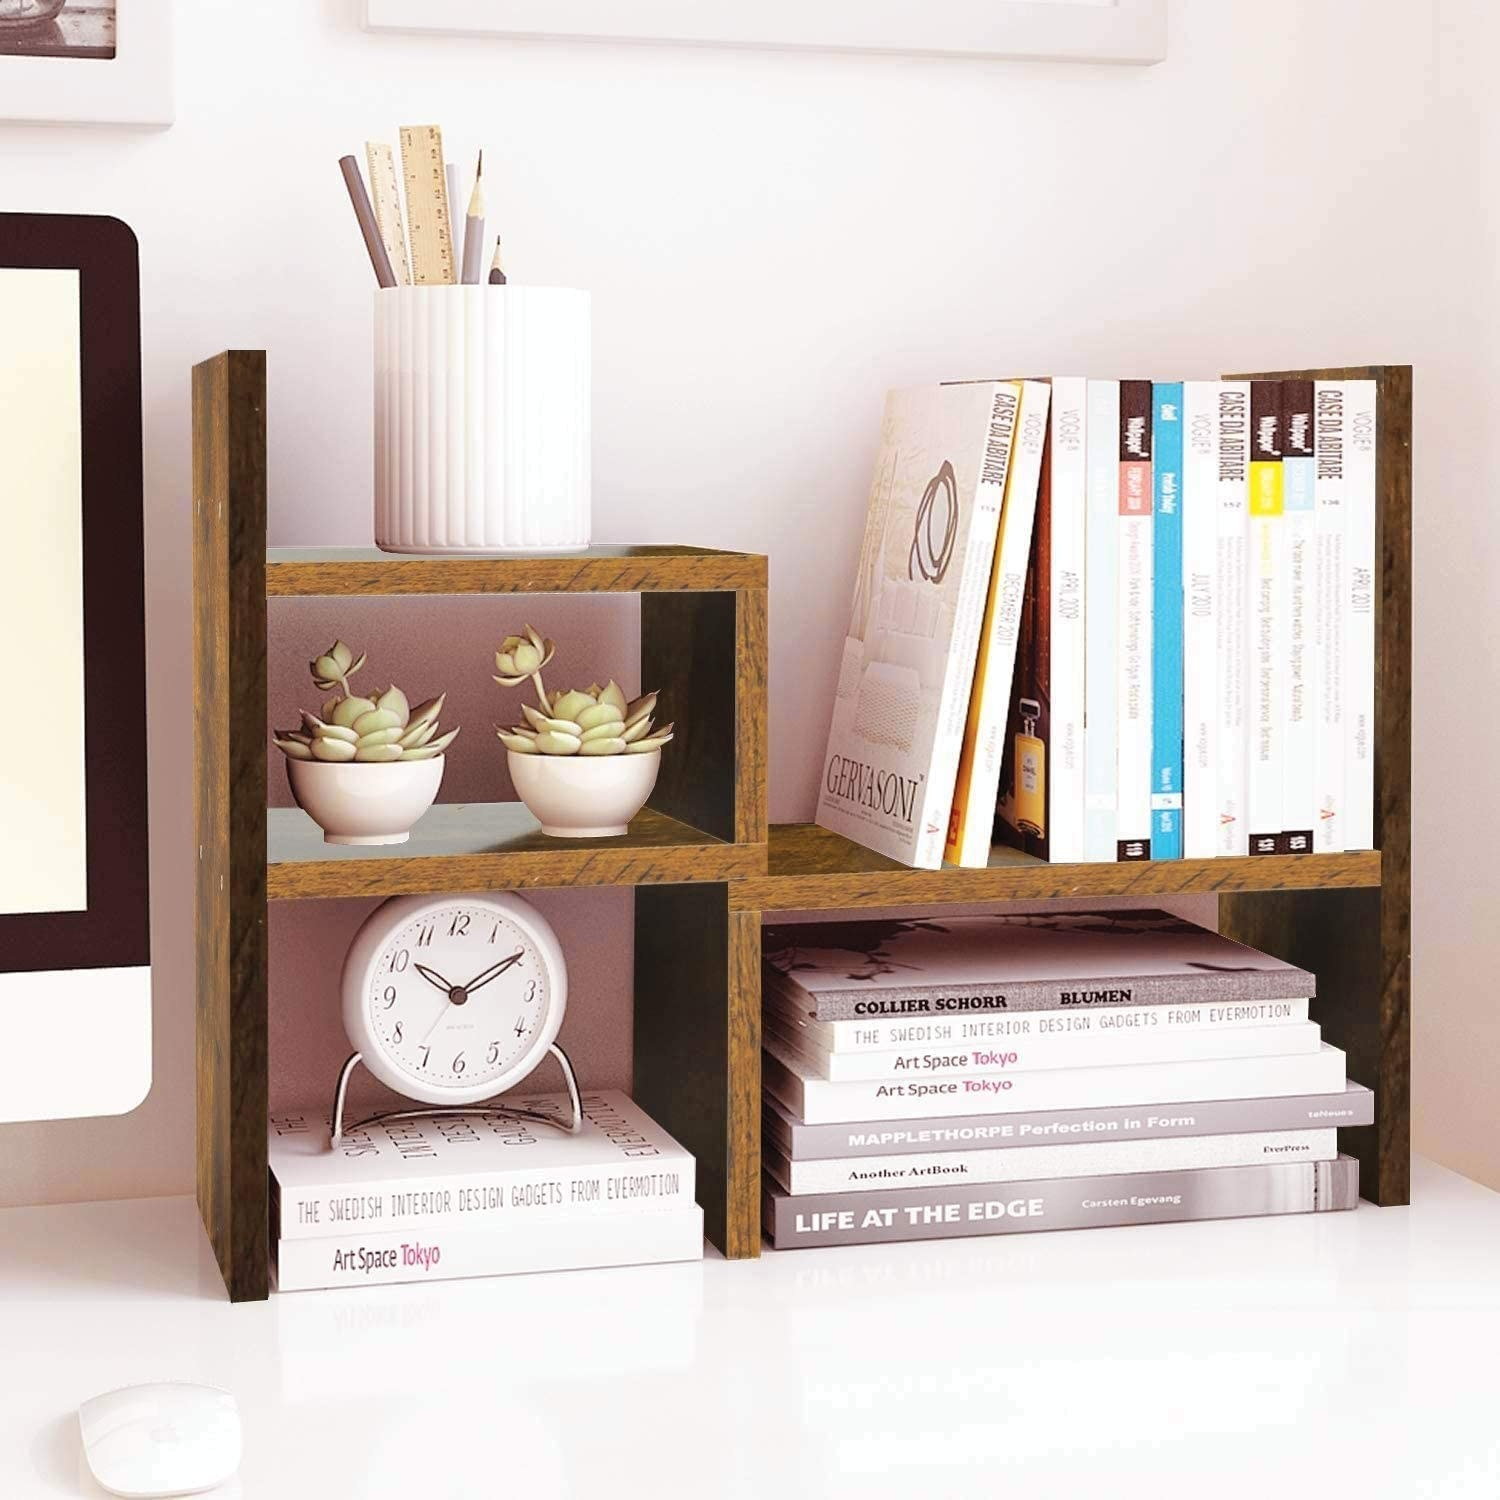 wooden shelf set holding plants, books, a clock, and a pencil cup